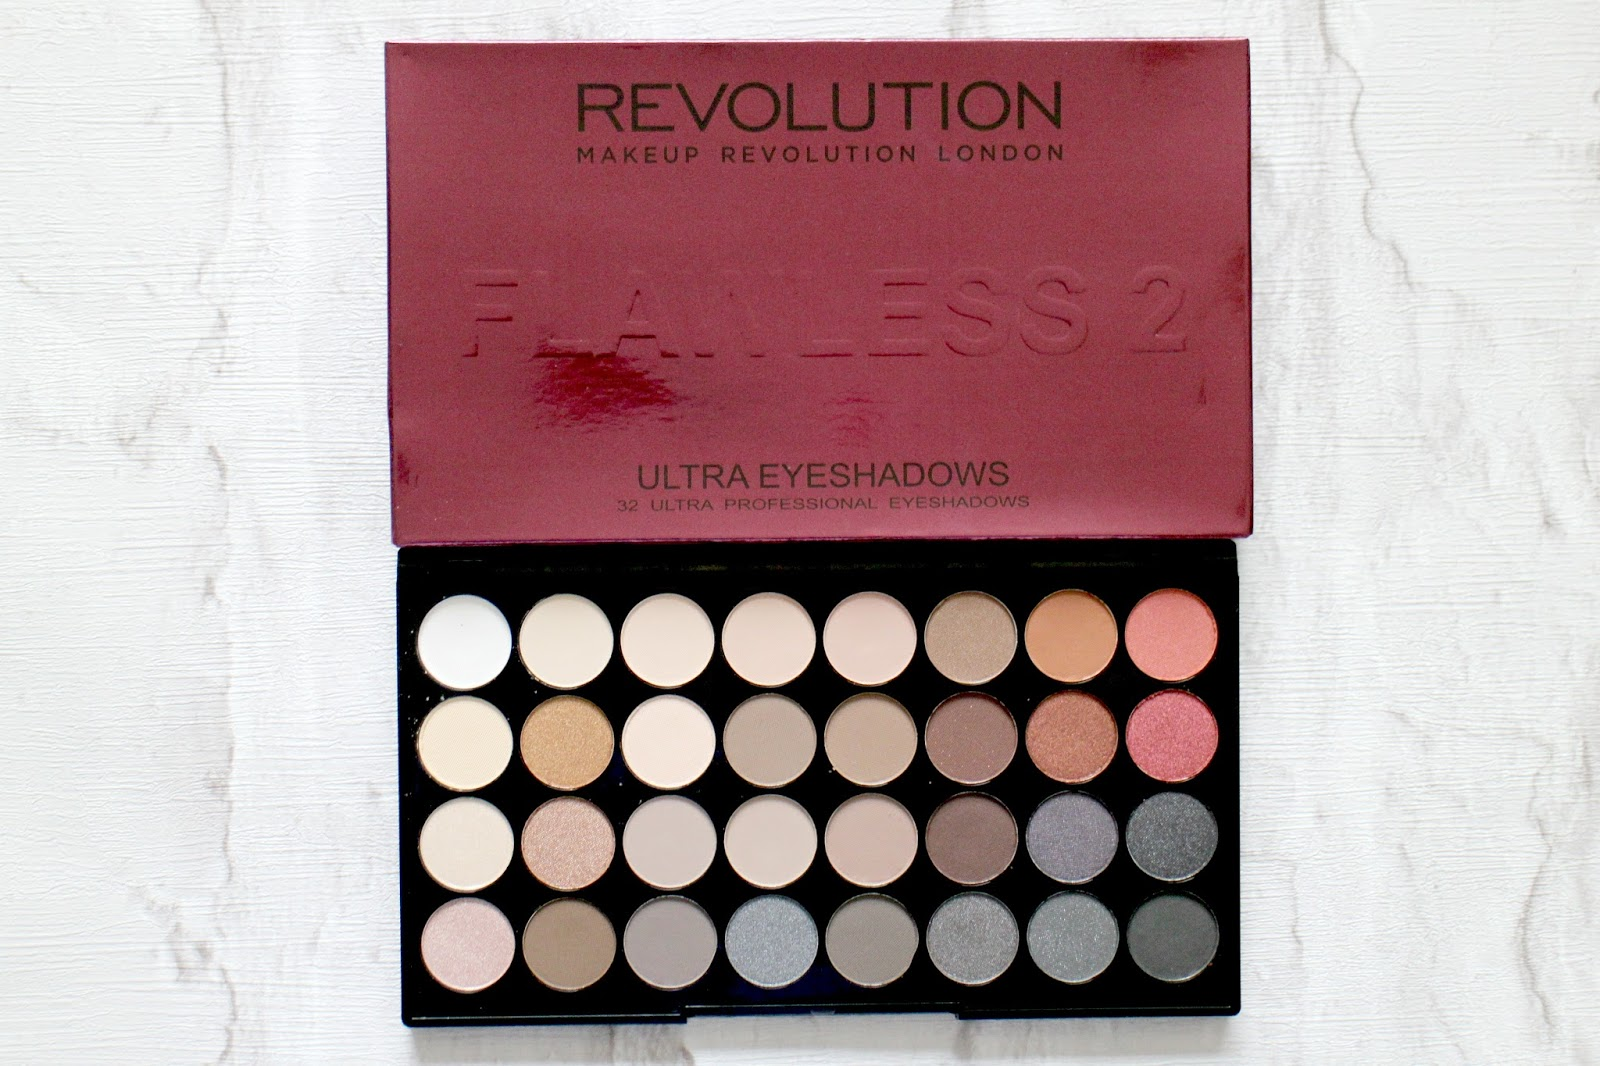 Makeup Revolution Flawless 2 Eyeshadow Palette